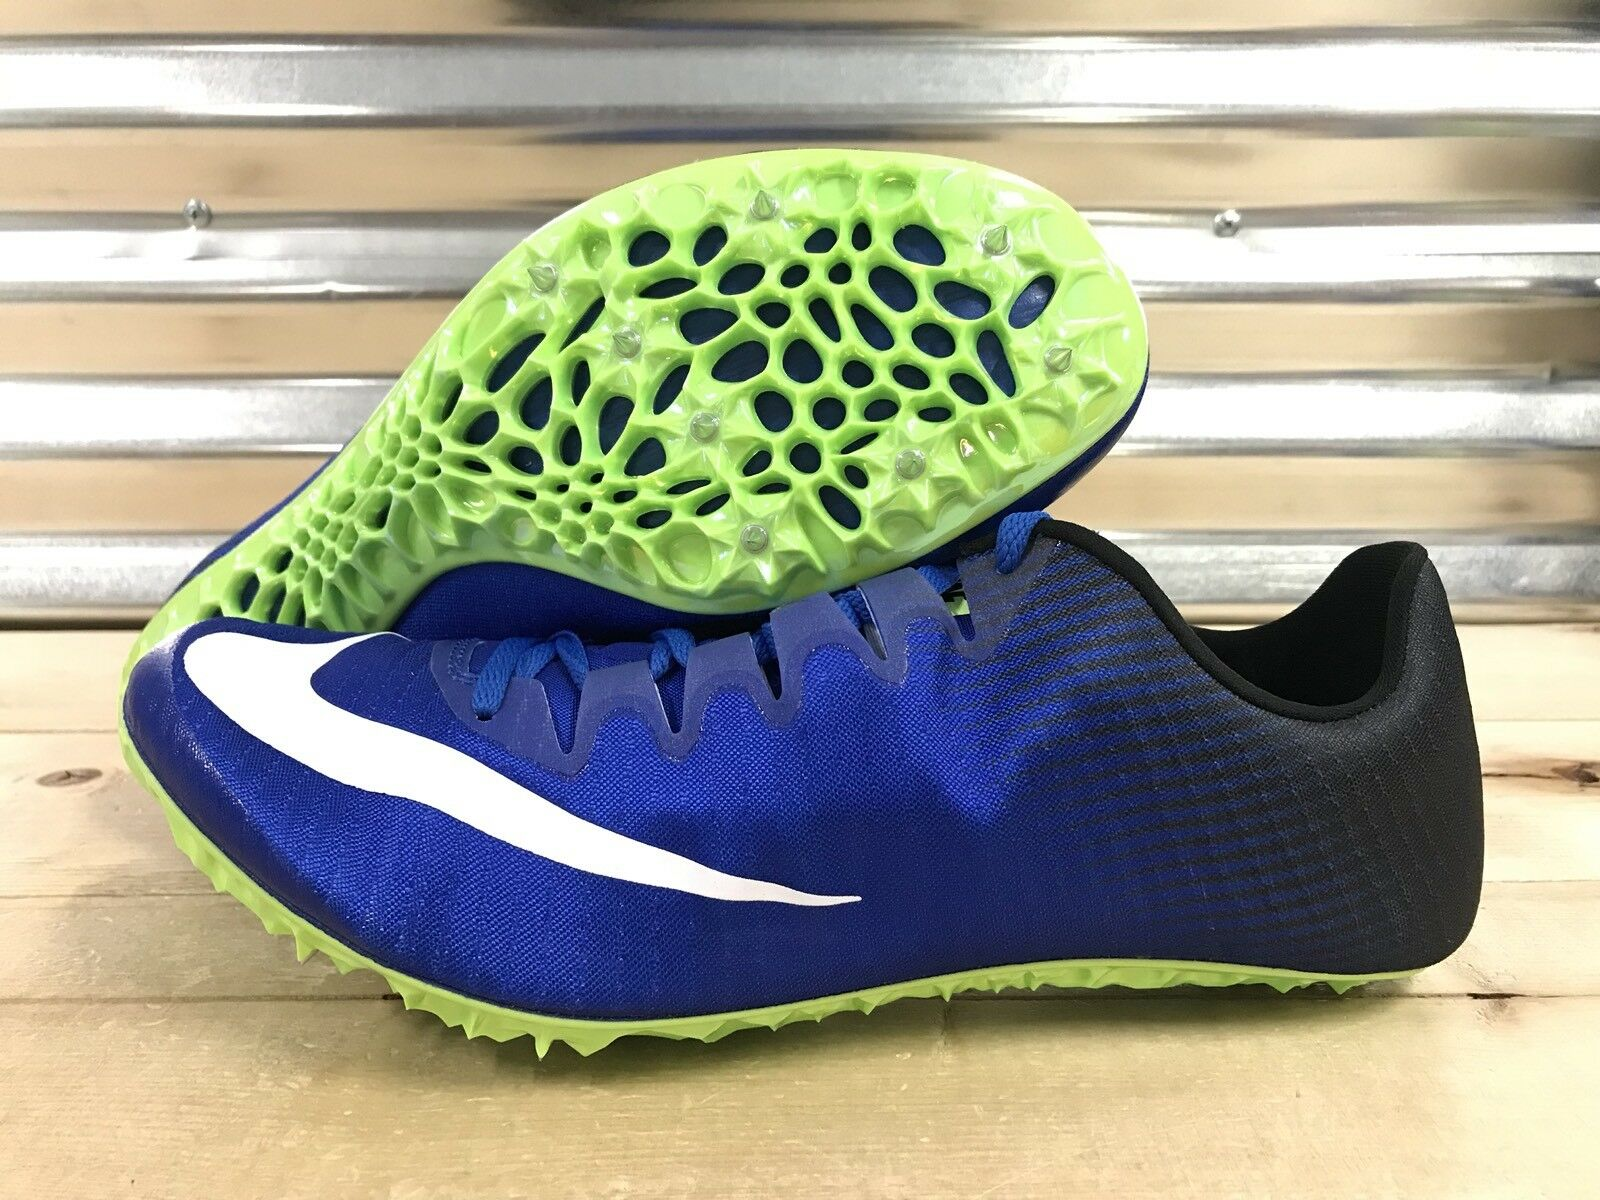 Nike Zoom Superfly Elite Racing Track Spikes Blue Black White Price reduction